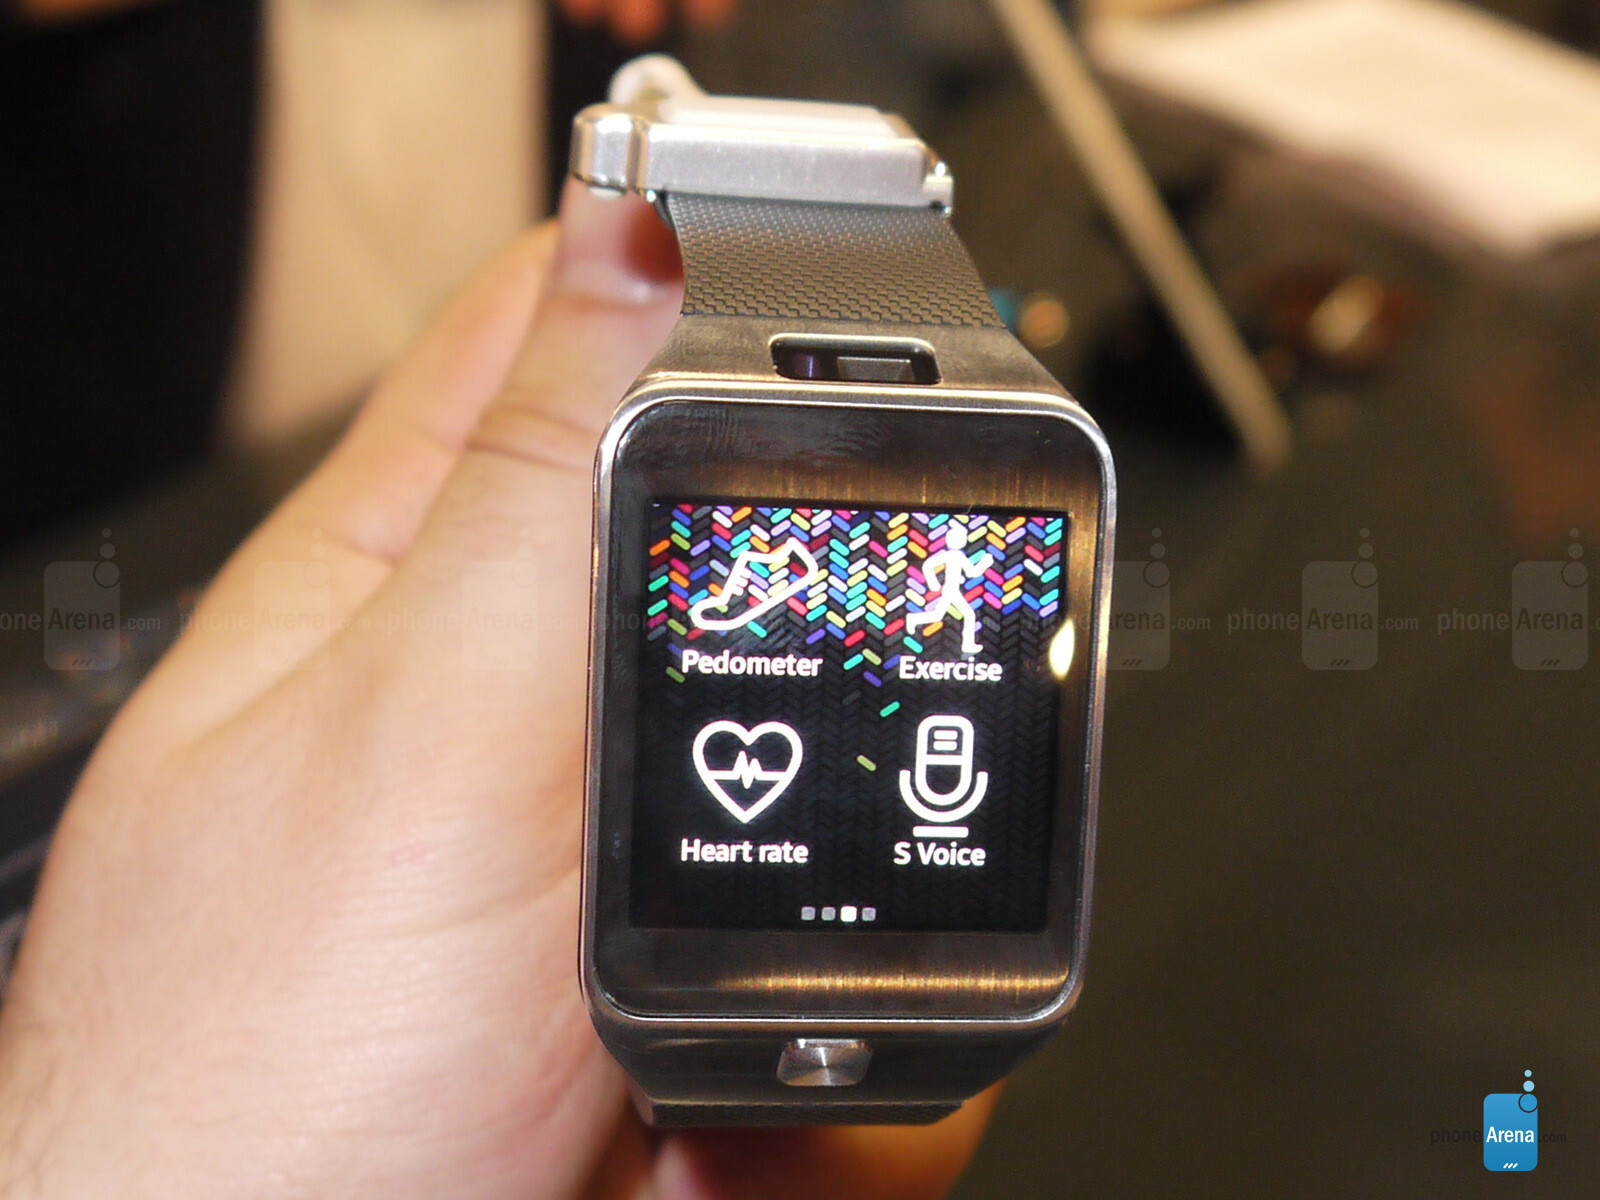 Samsung Introduced Its Smartwatch, The Galaxy Gear